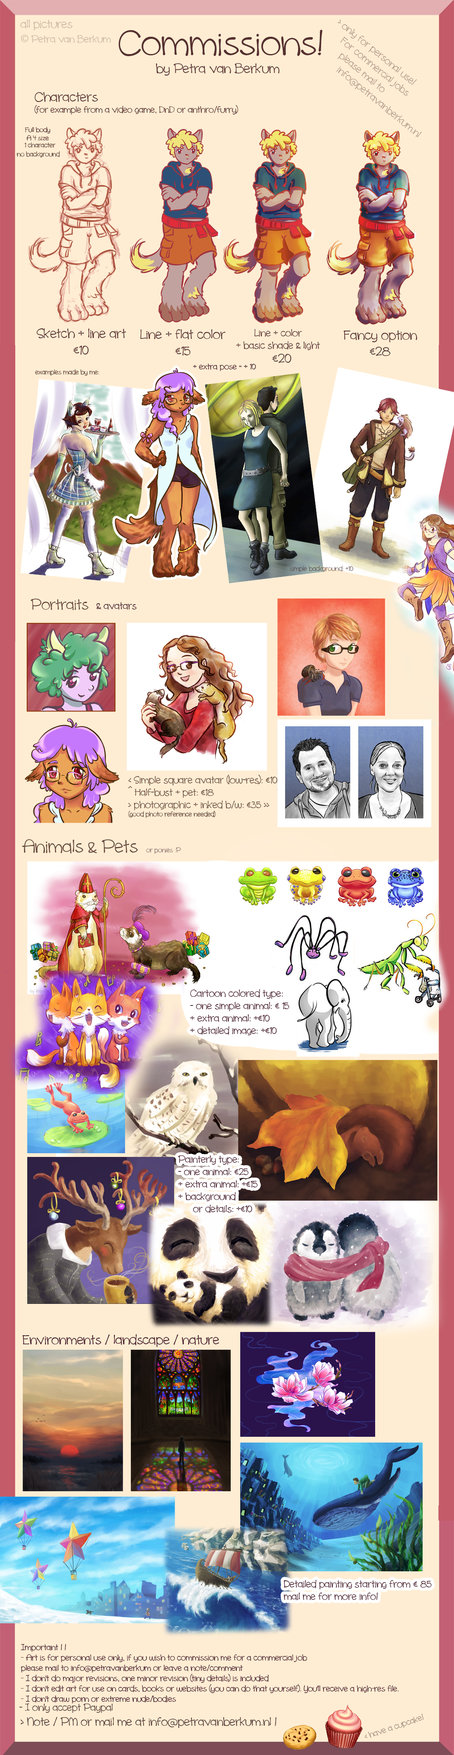 Most recent image: Commission info